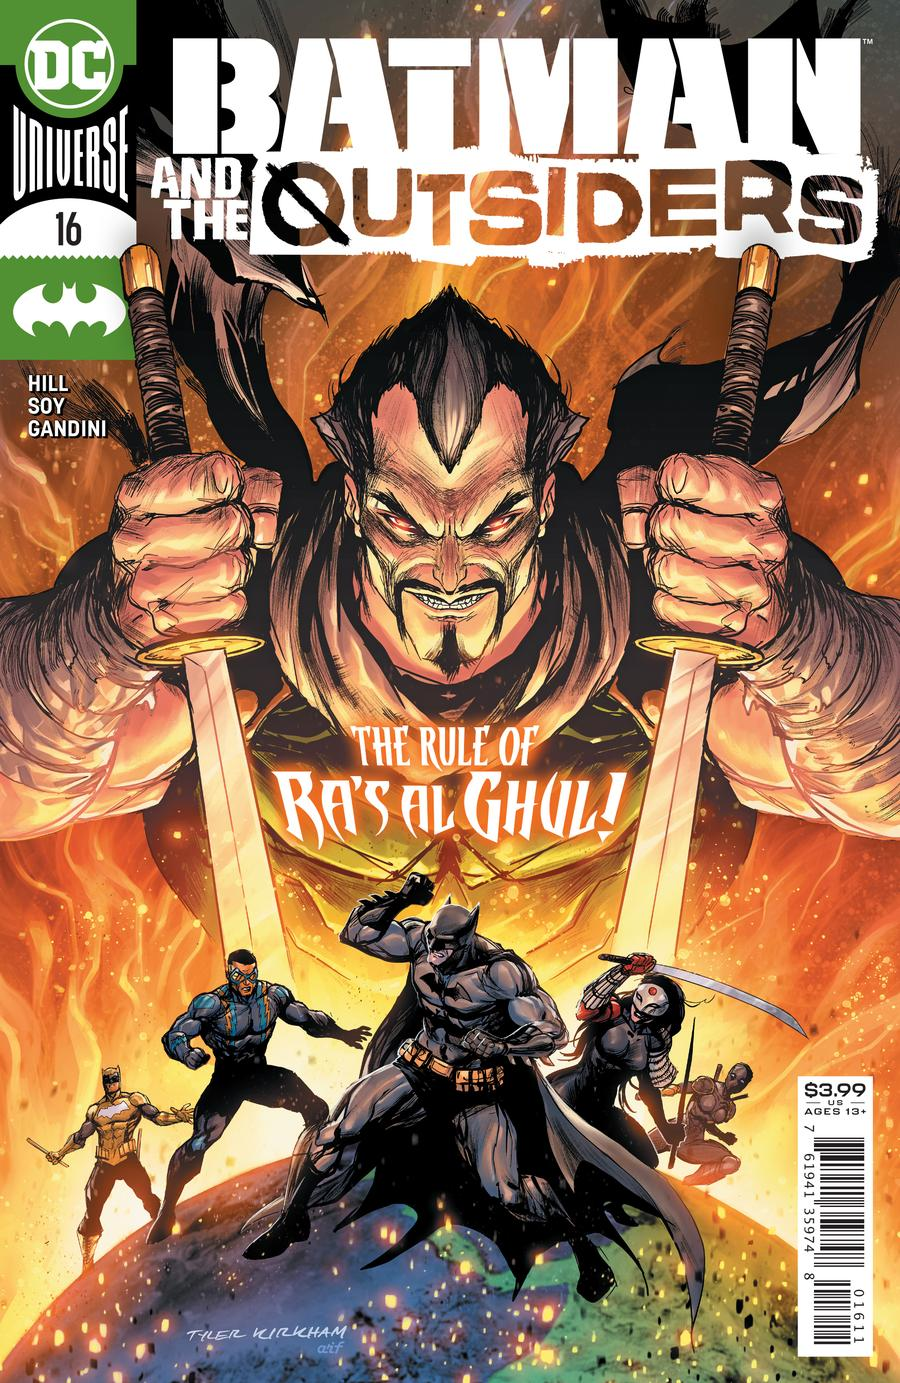 BATMAN & THE OUTSIDERS #16 COVER A TYLER KIRKHAM